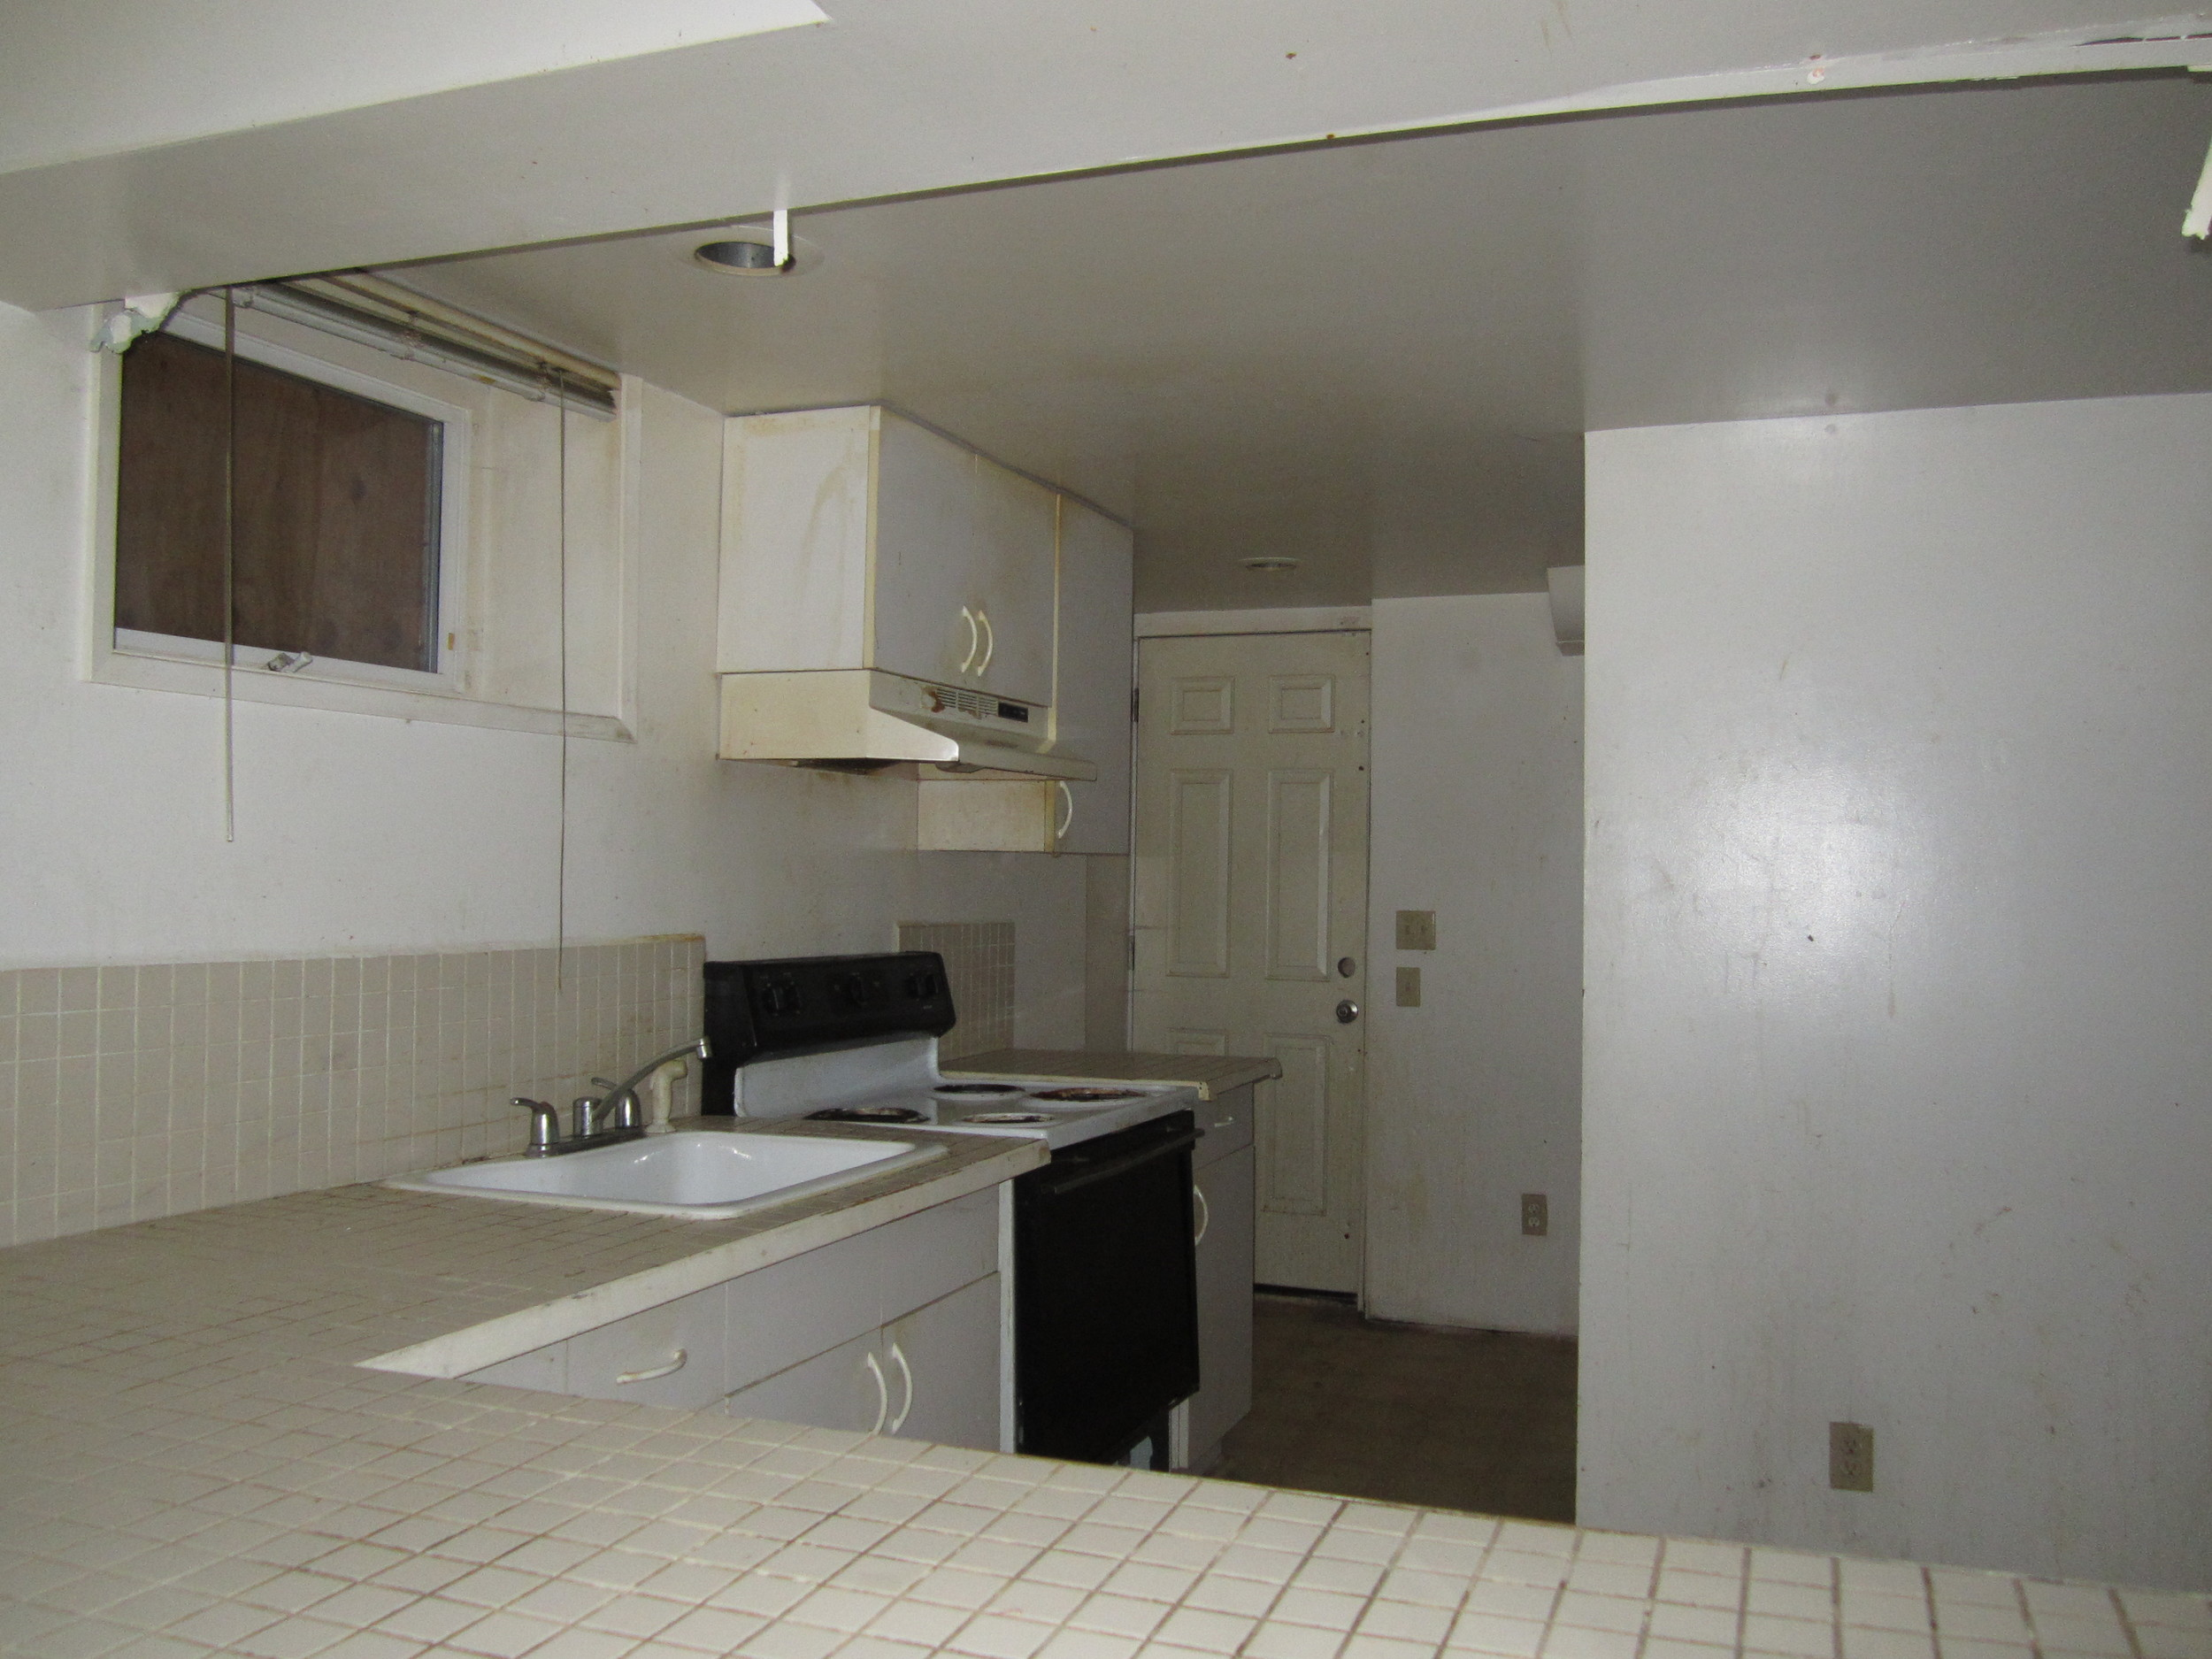 561-869535 - Kitchen 2 basement.JPG